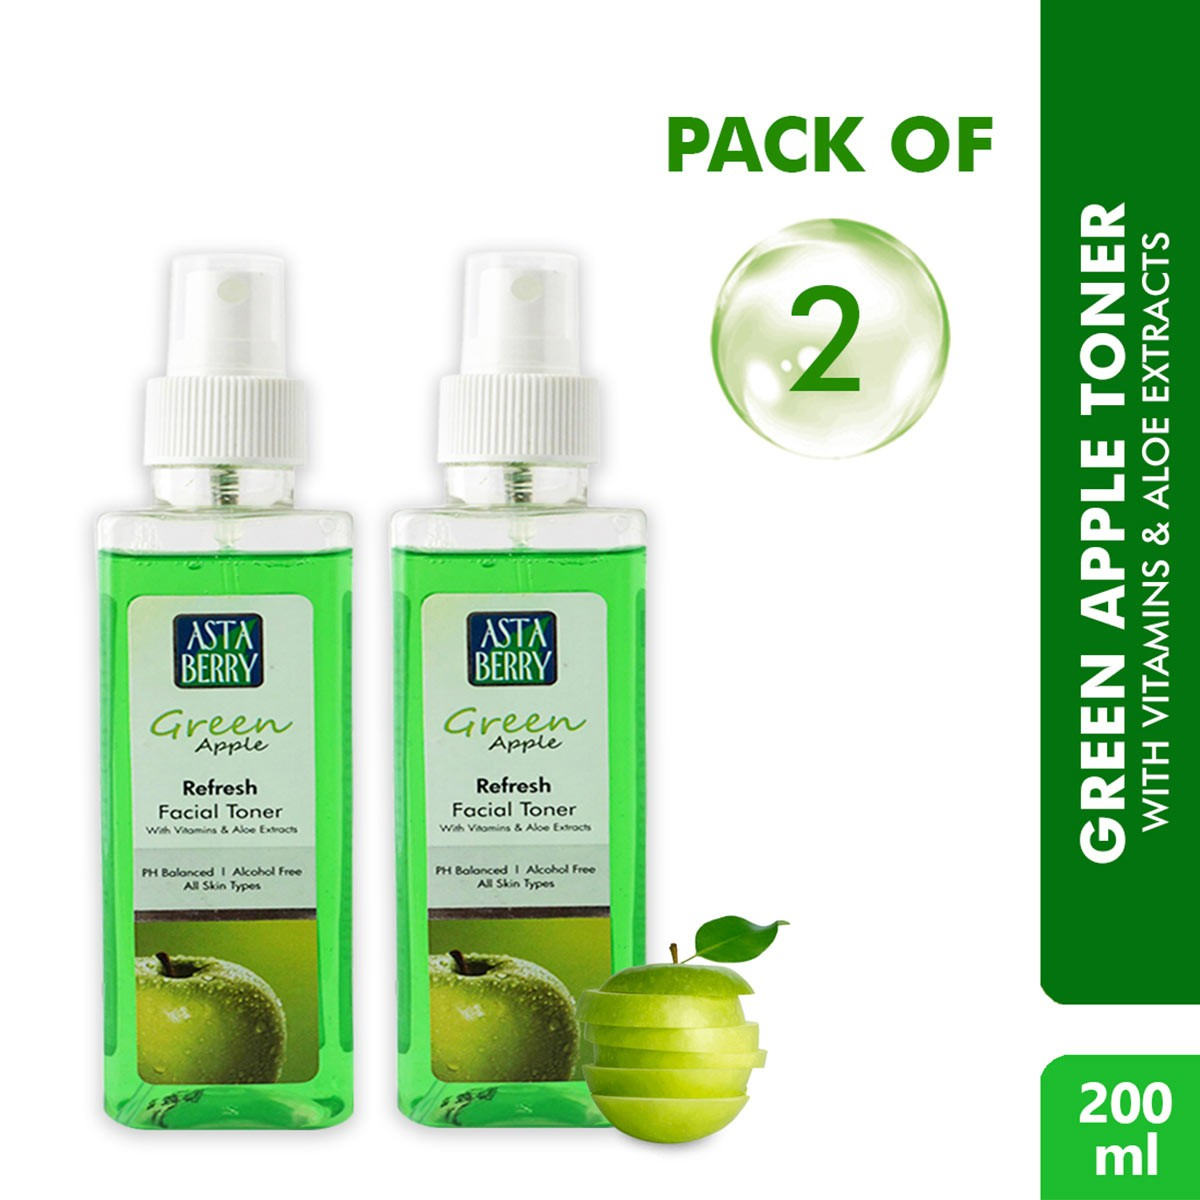 Astaberry Green Apple Toner (200ml) Pack of 2